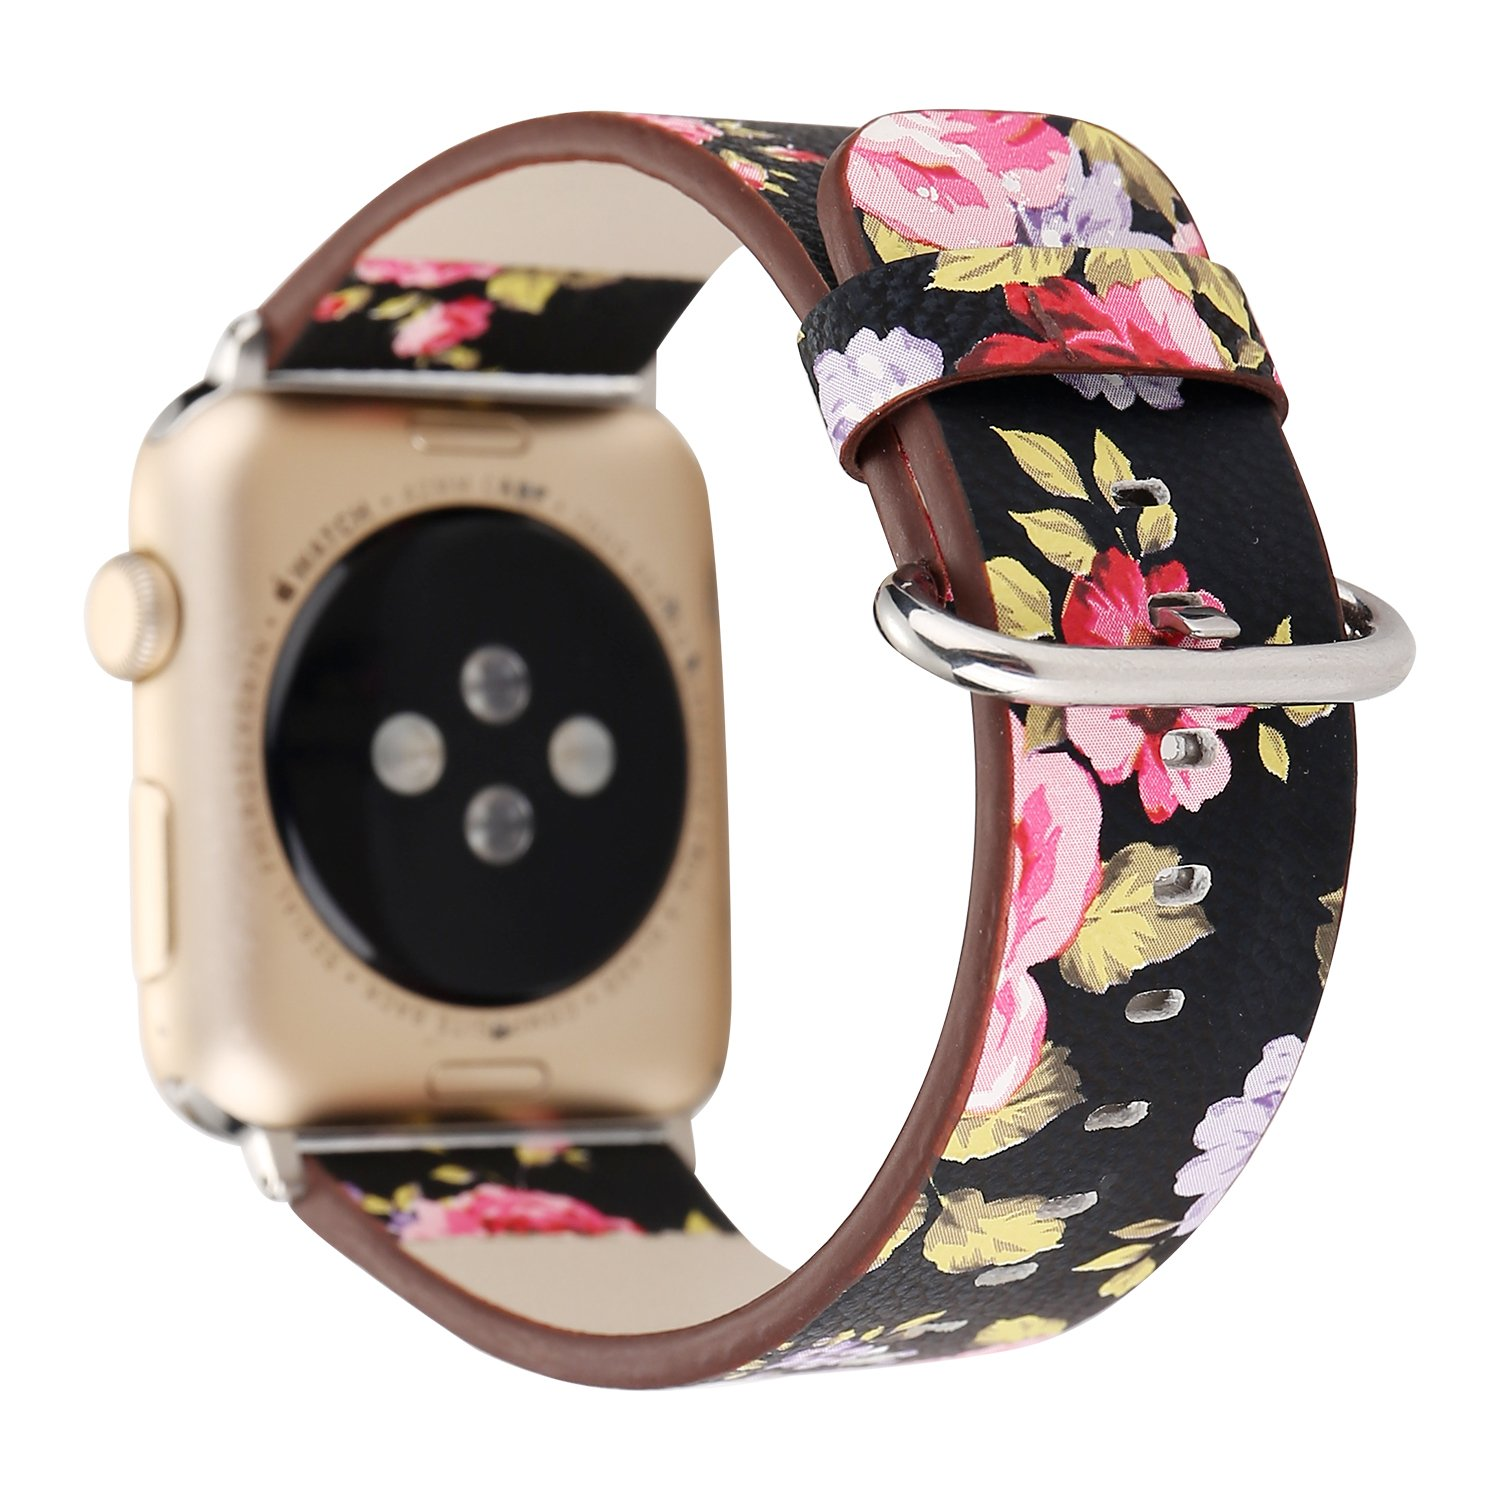 YOSWAN Flower Design Strap for iWatch,38mm 42mm Floral Pattern Printed Leather Wrist Band Apple Watch Link Bracelet for Apple Watch Smartwatch Fitness ...